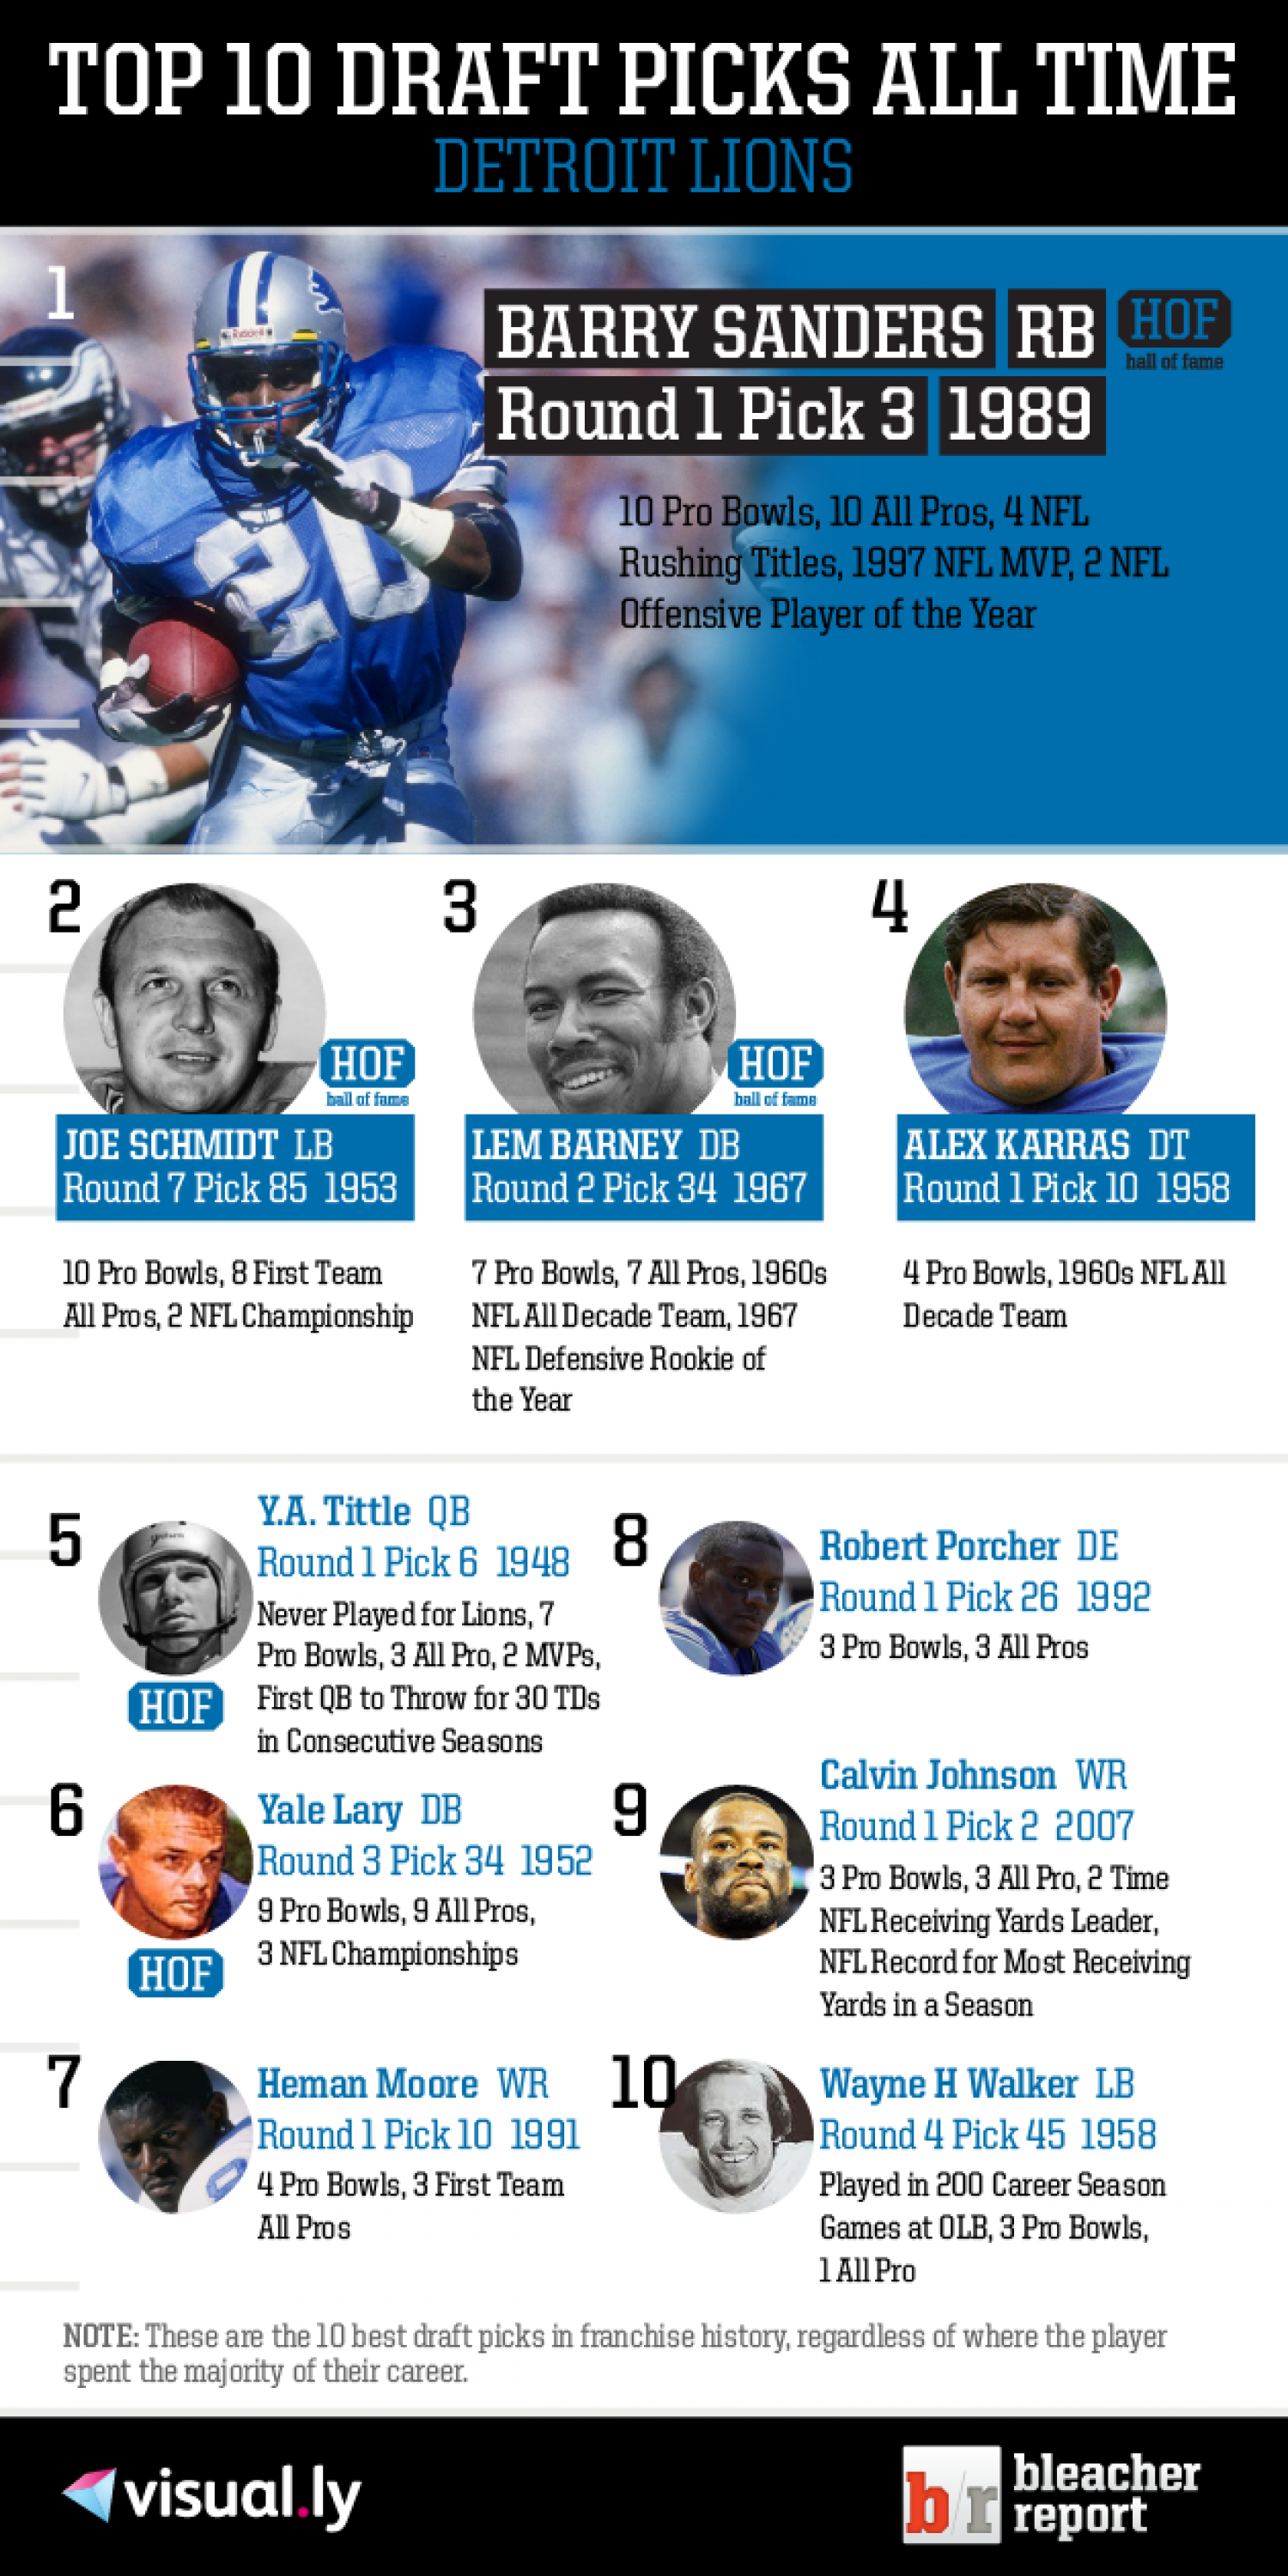 Top 10 Draft Picks of All Time: Detroit Lions Infographic